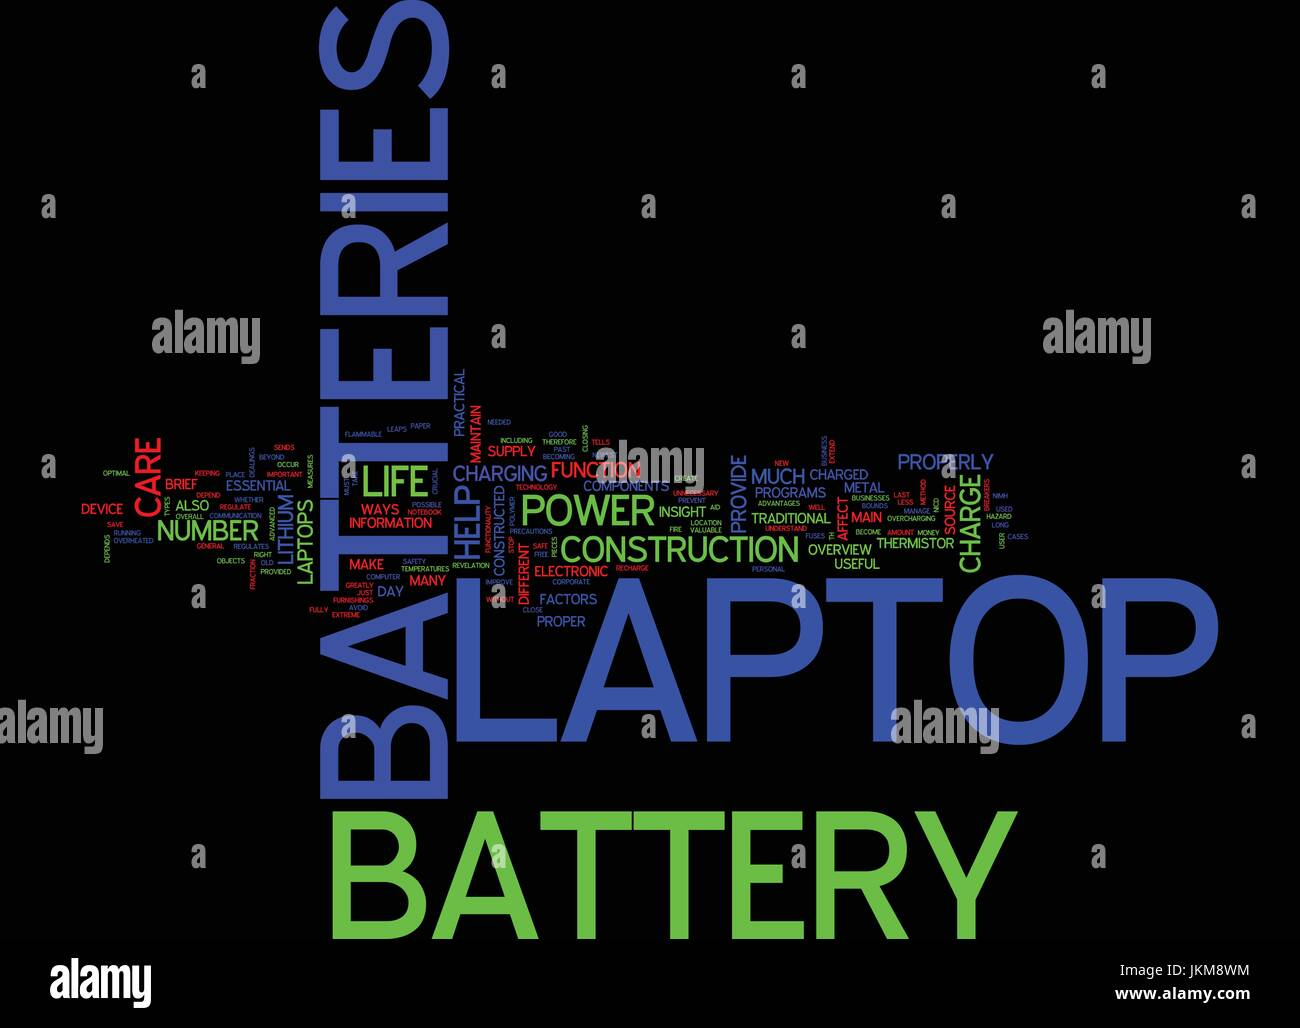 LAPTOP BATTERIES AND LAPTOP BATTERY CARE Text Background Word Cloud Concept - Stock Image